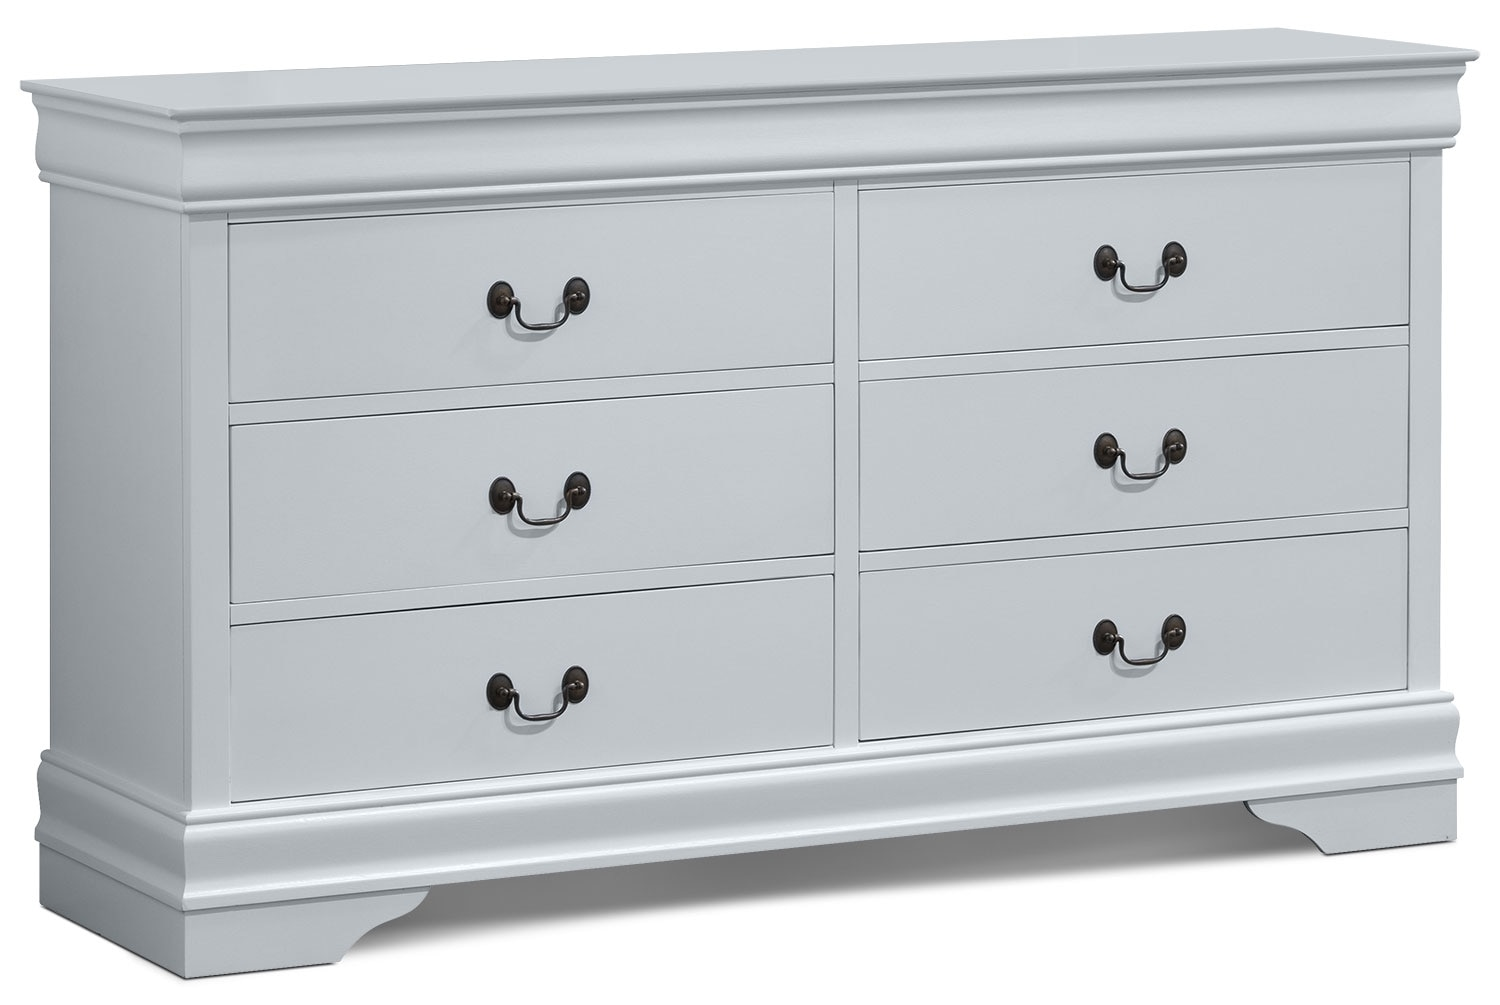 Bedroom Furniture - Belleview Dresser - White